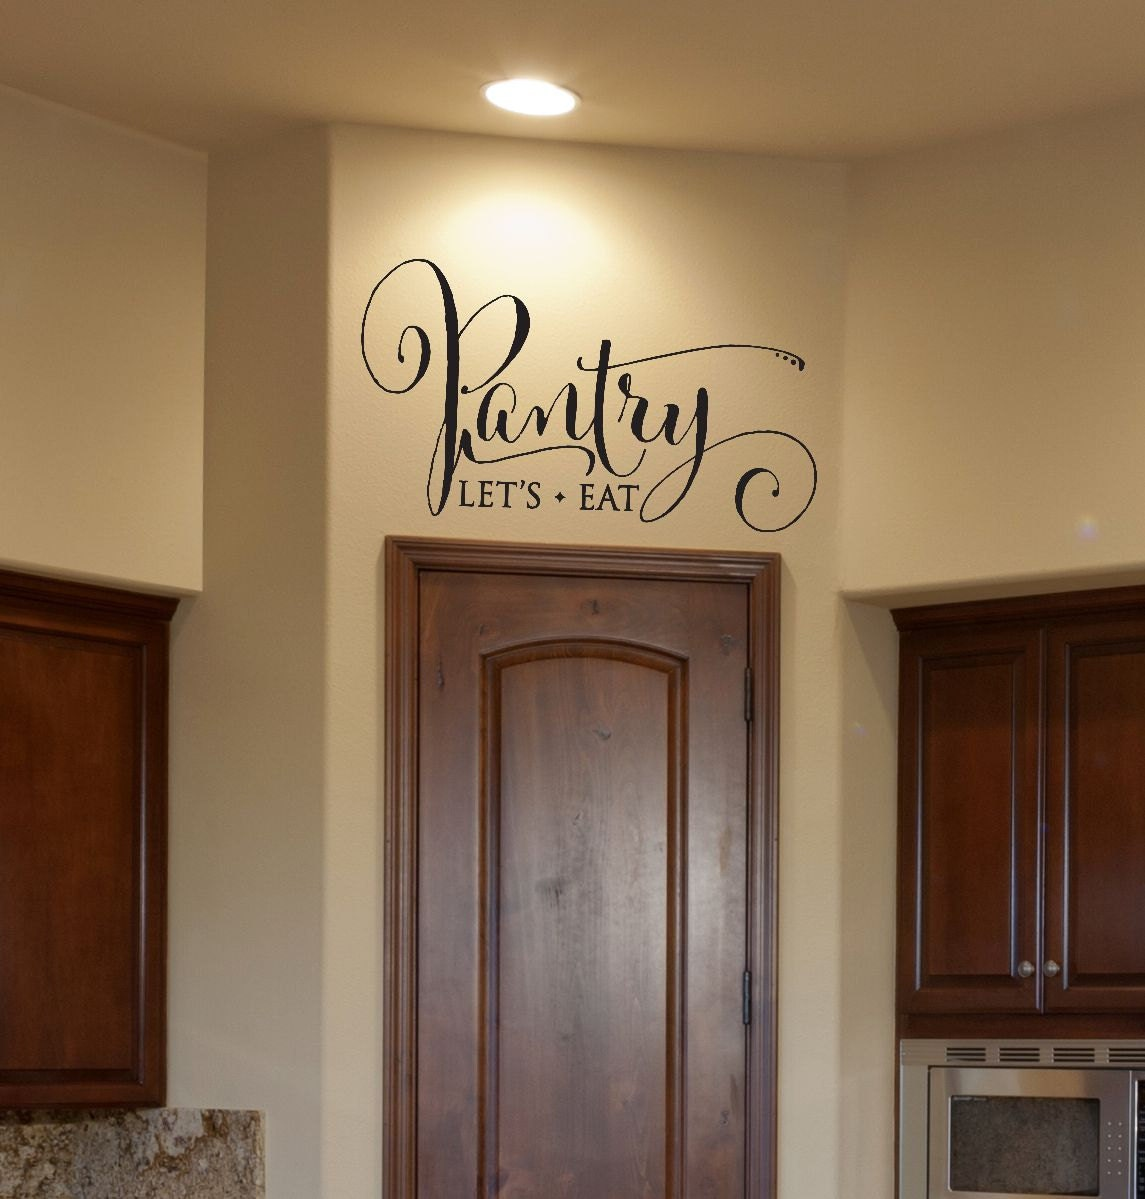 Bedroom Door Signs Kitchen Decor Pantry Decal Pantry Sign Pantry Wall Decal